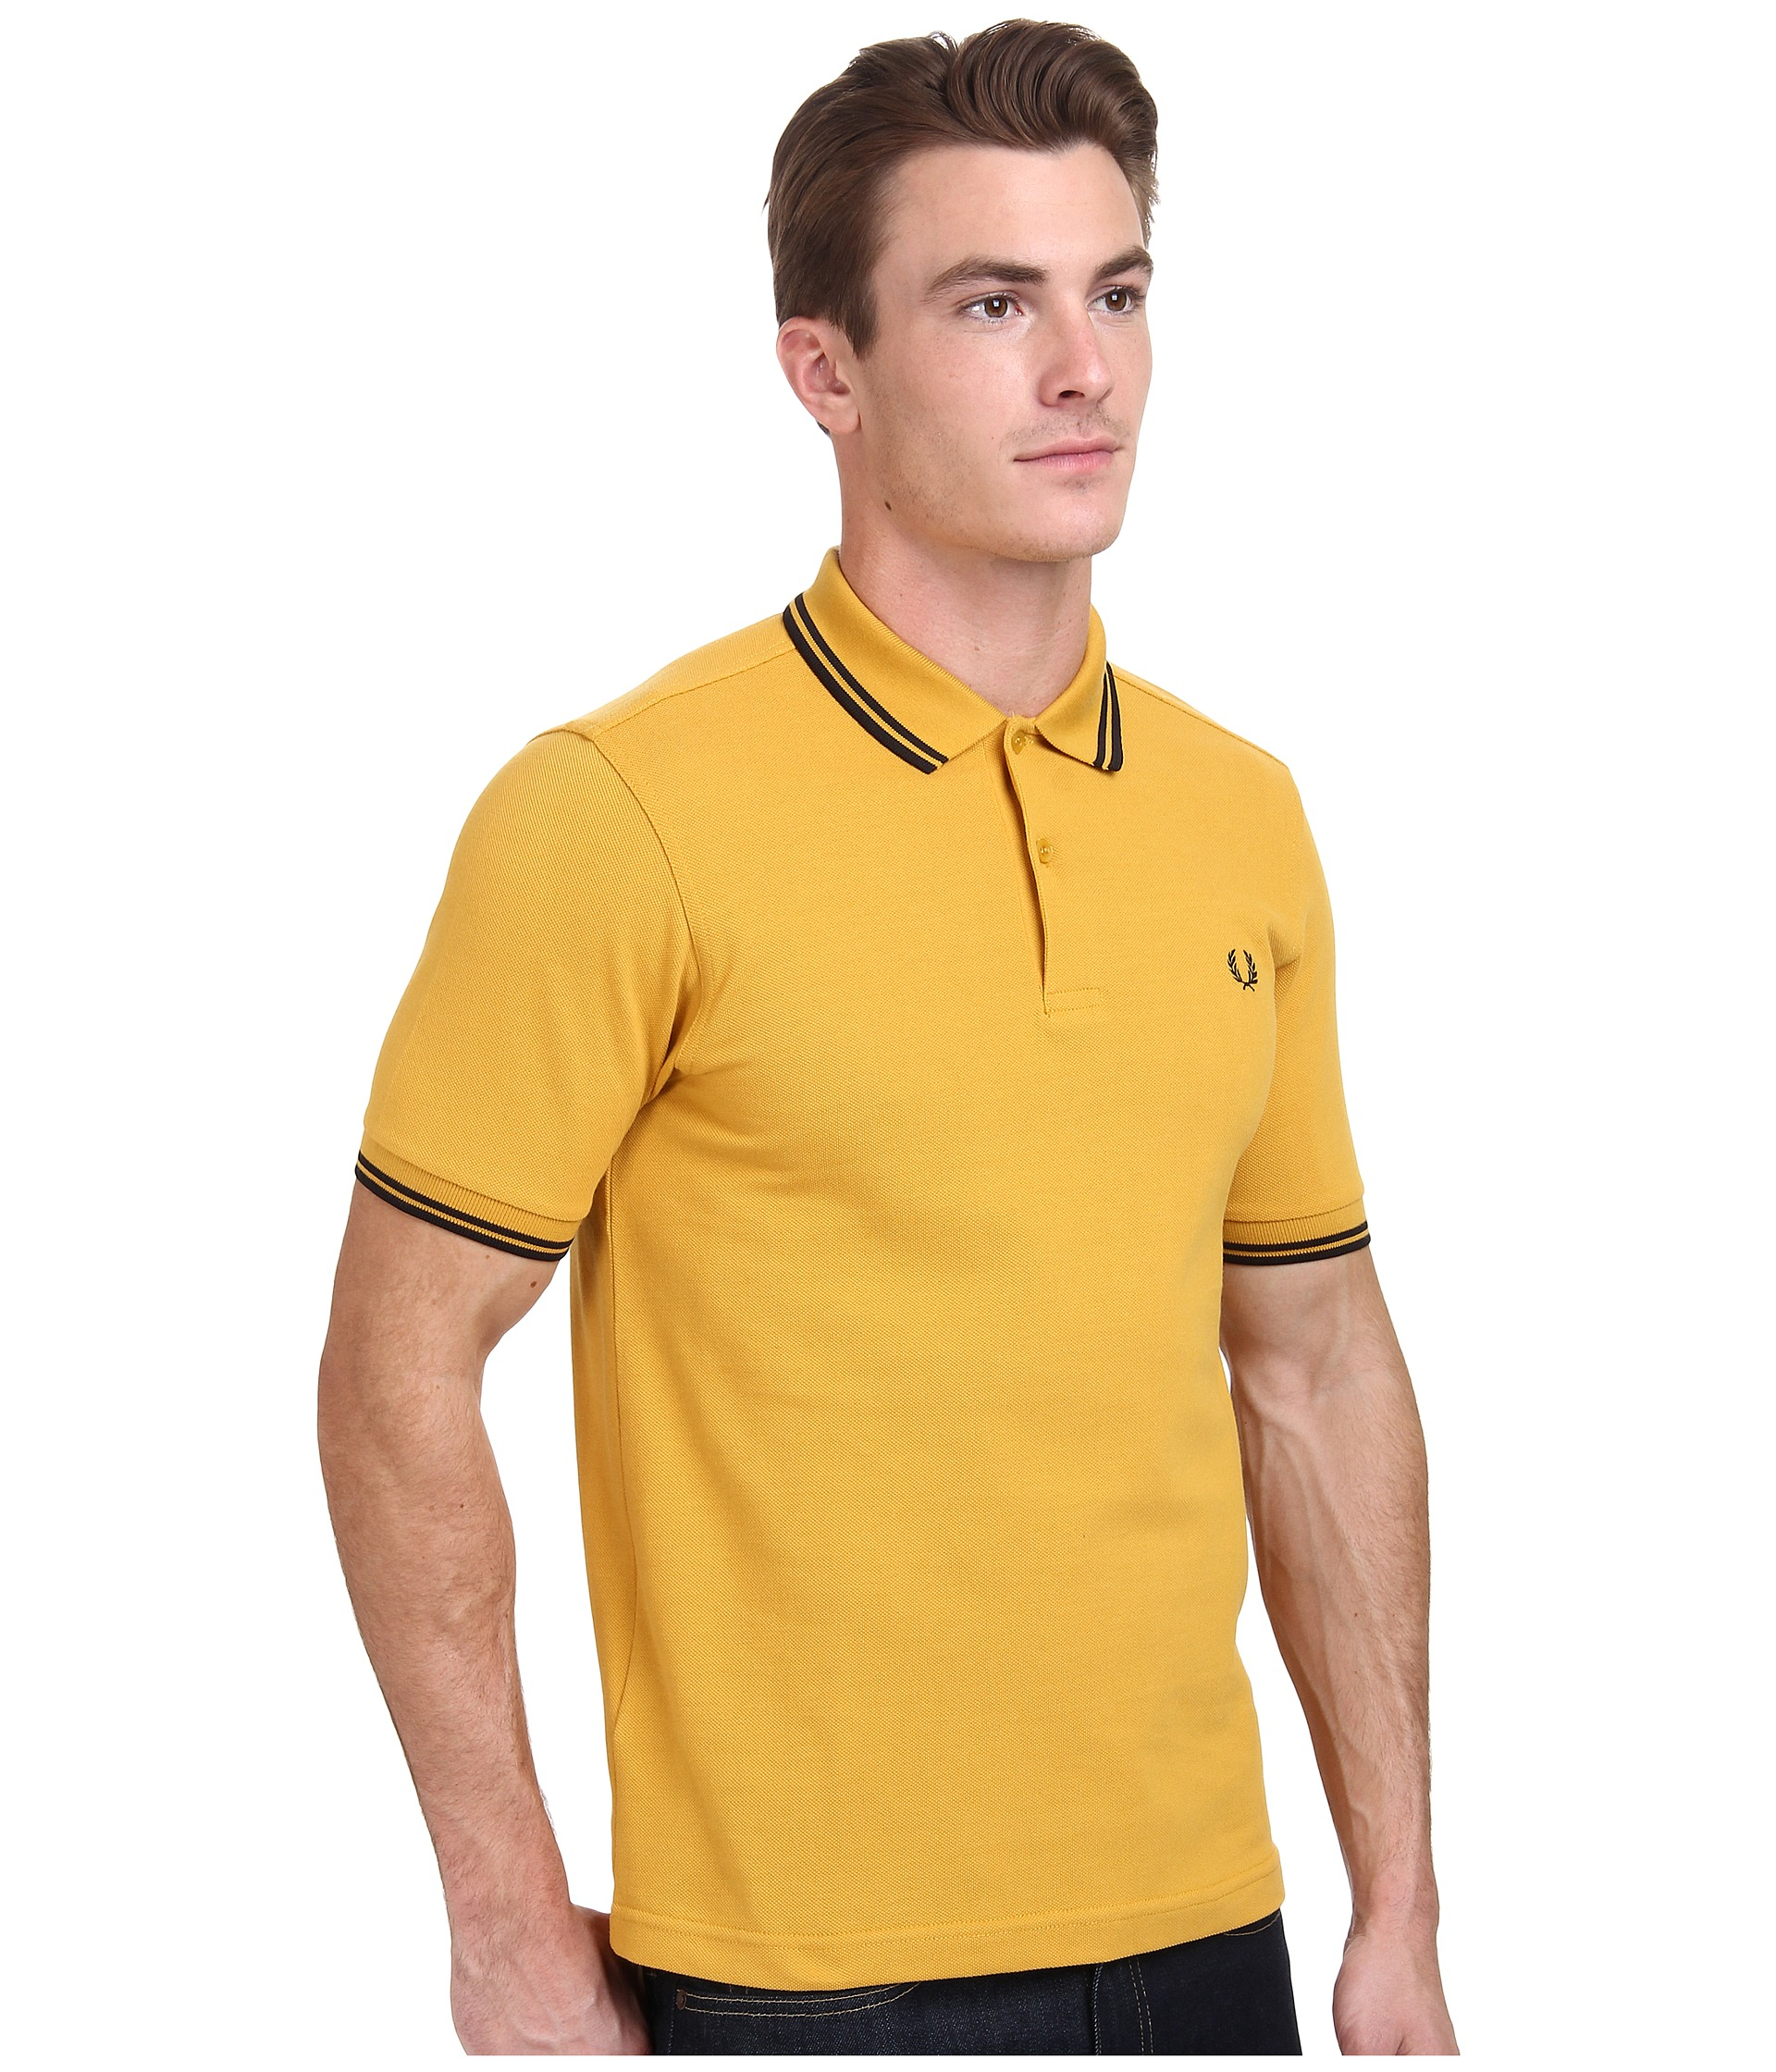 b3ef0d6a7 Fred Perry Slim Fit Twin Tipped Polo in Yellow for Men - Lyst